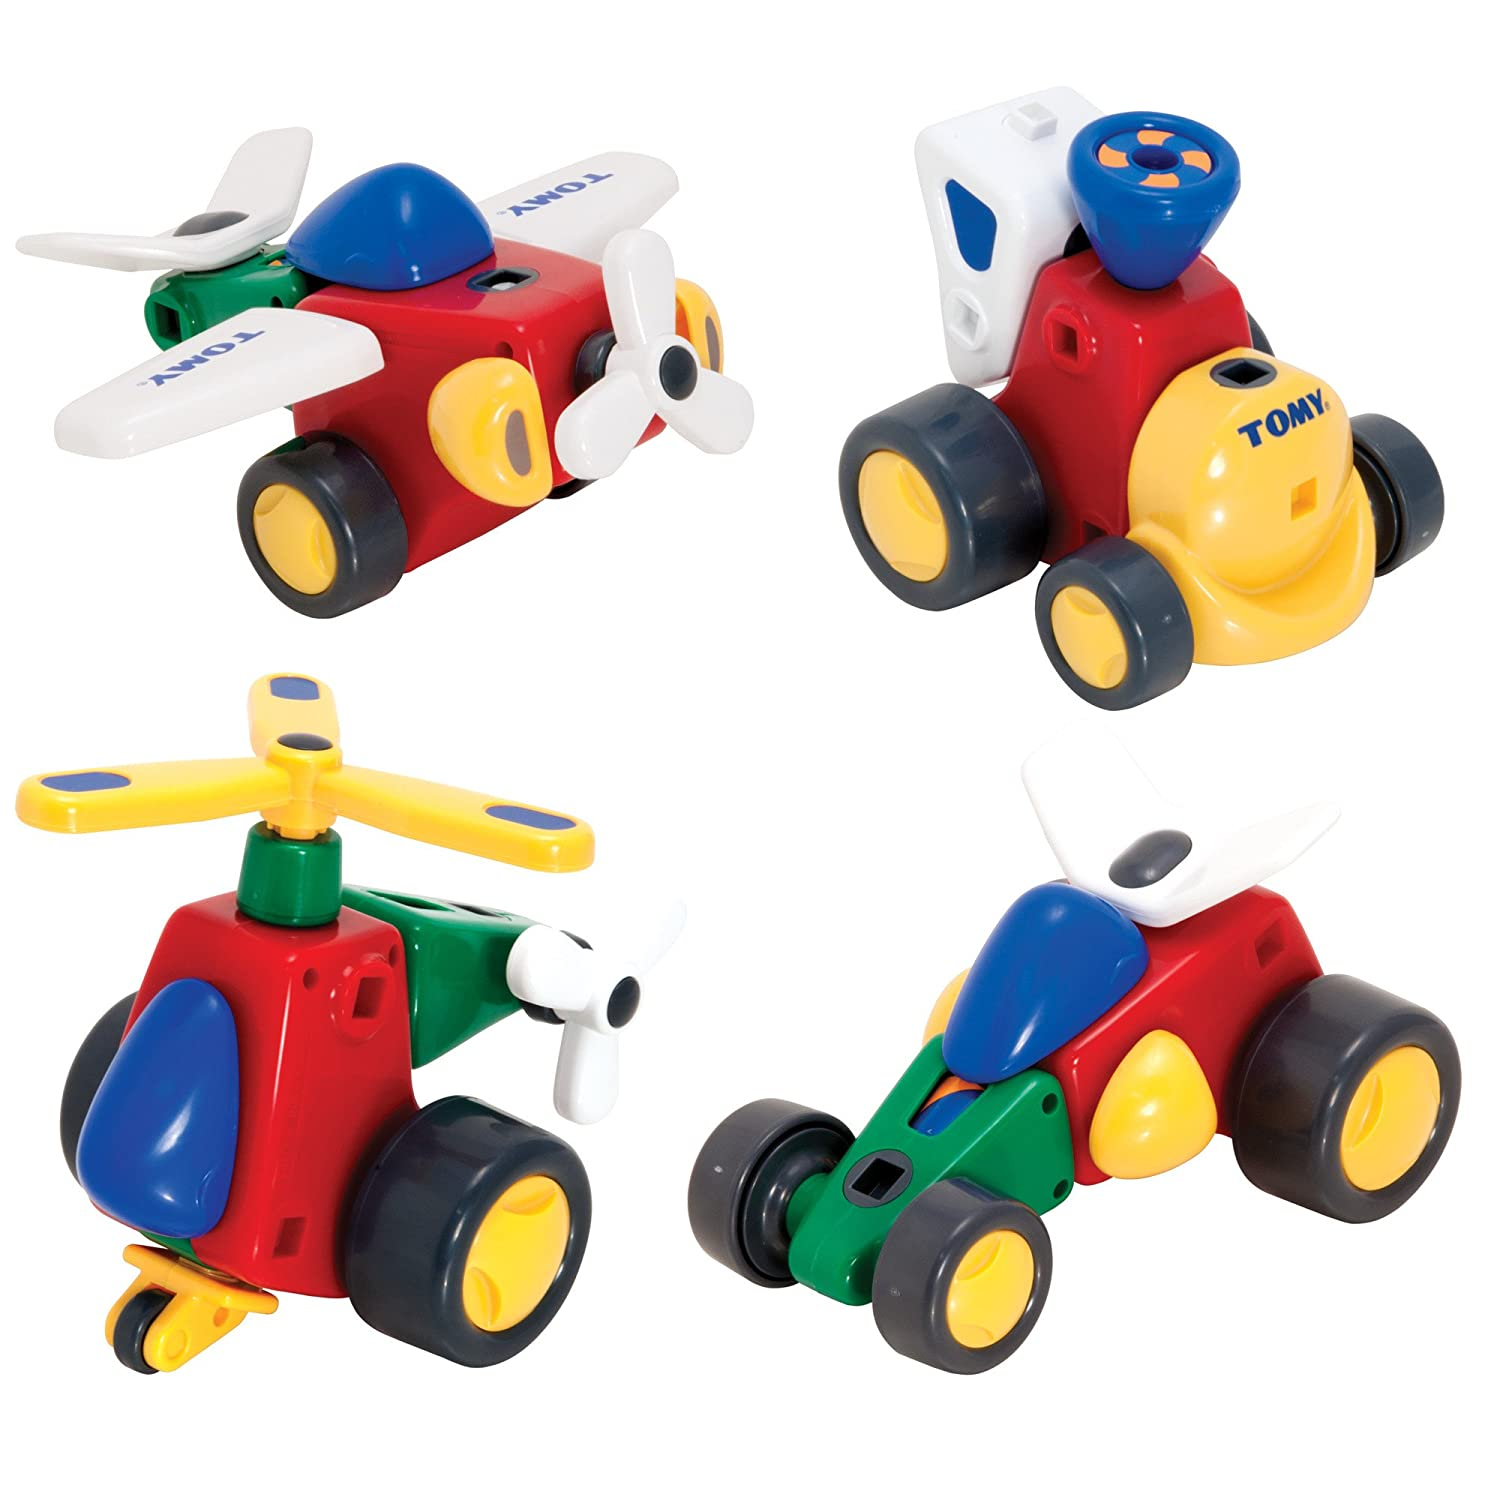 Amazon.com: Tomy Constructables Vehicles: Toys & Games